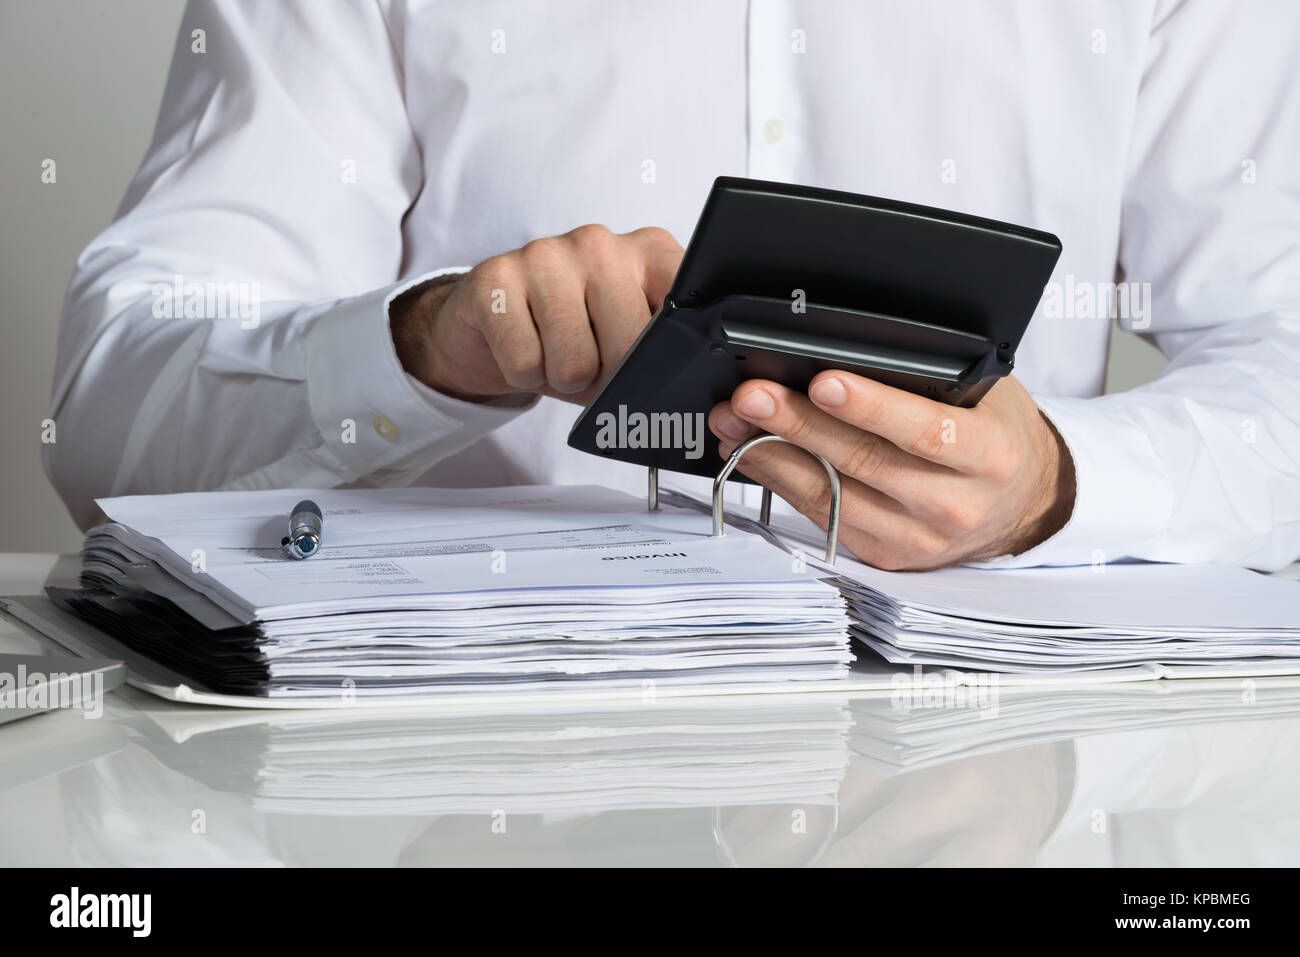 Businessman Calculating Invoice At Desk - Stock Image